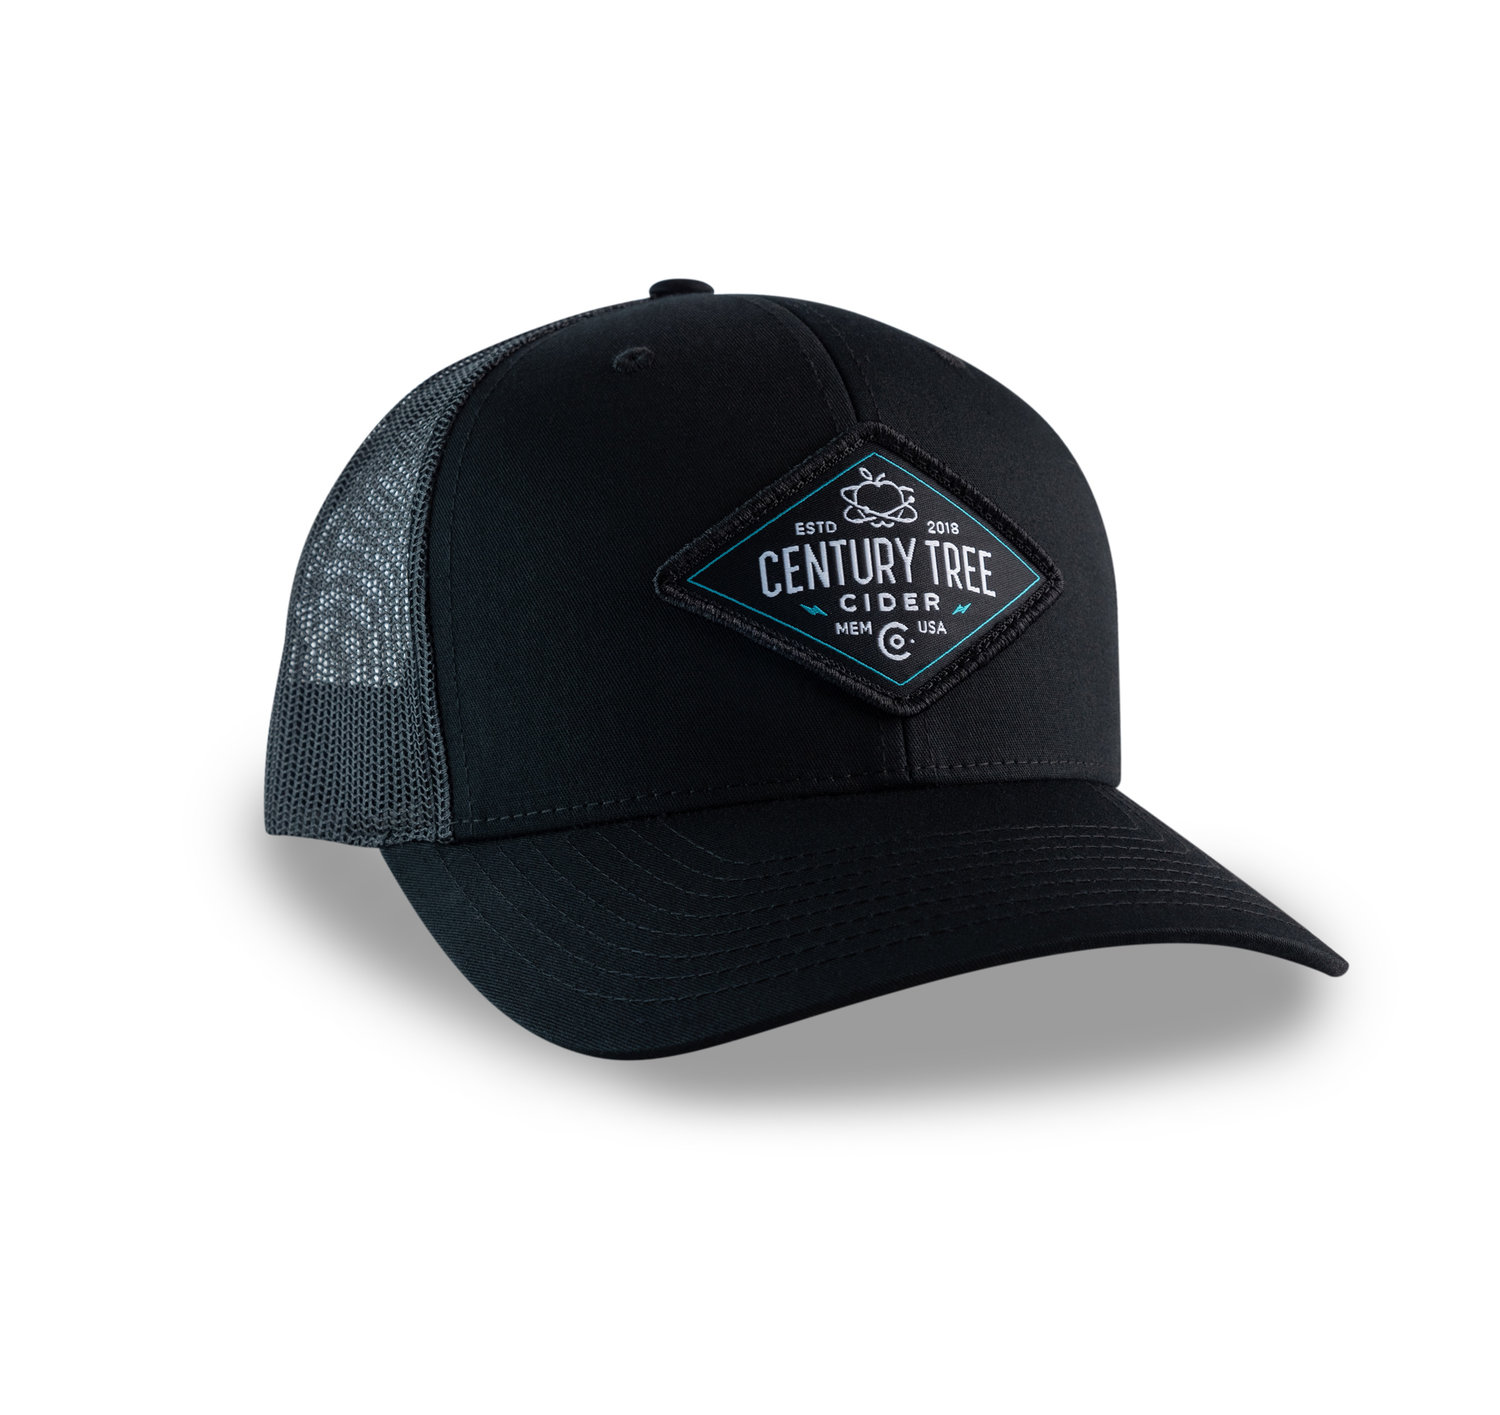 db31f73addcdd Premium Trucker Hat (Black) — Century Tree Cider Co.